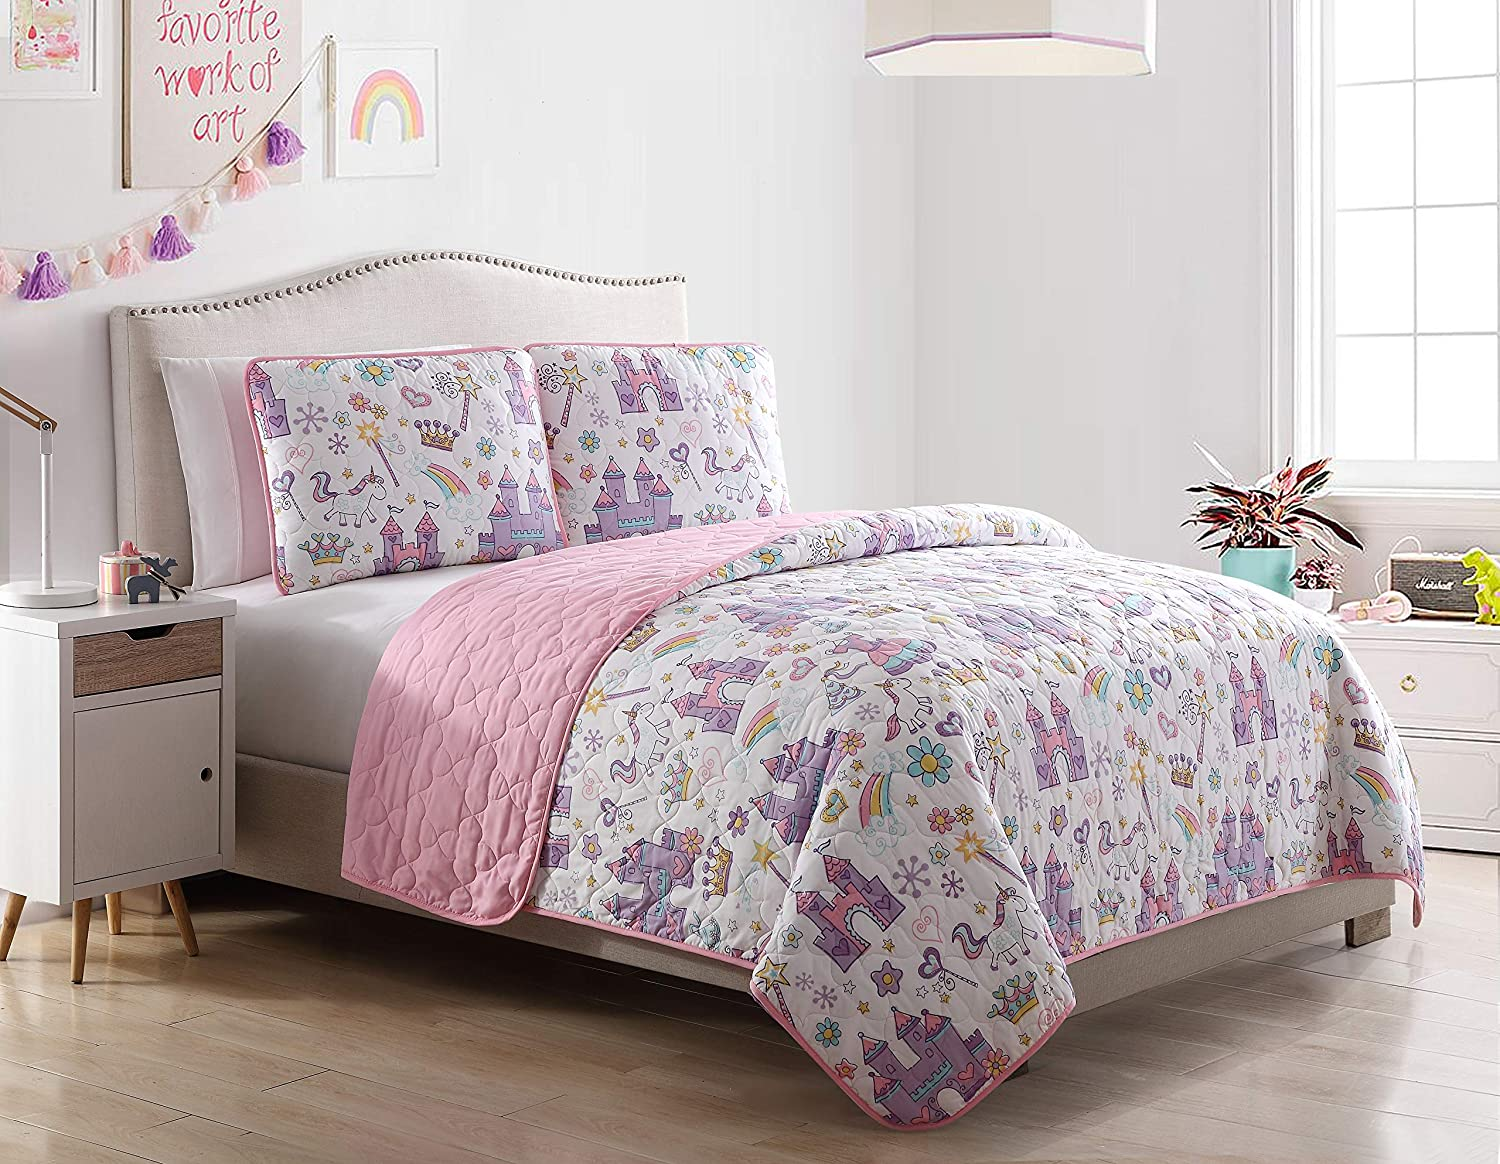 Kute Kids Unicorn Magic Castle Quilt Set, Includes Sham(s) Design Features a Castle, Rainbow, Crown and Unicorn – Available in Twin & Full/Queen (Full/Queen) Morgan Home Fashions